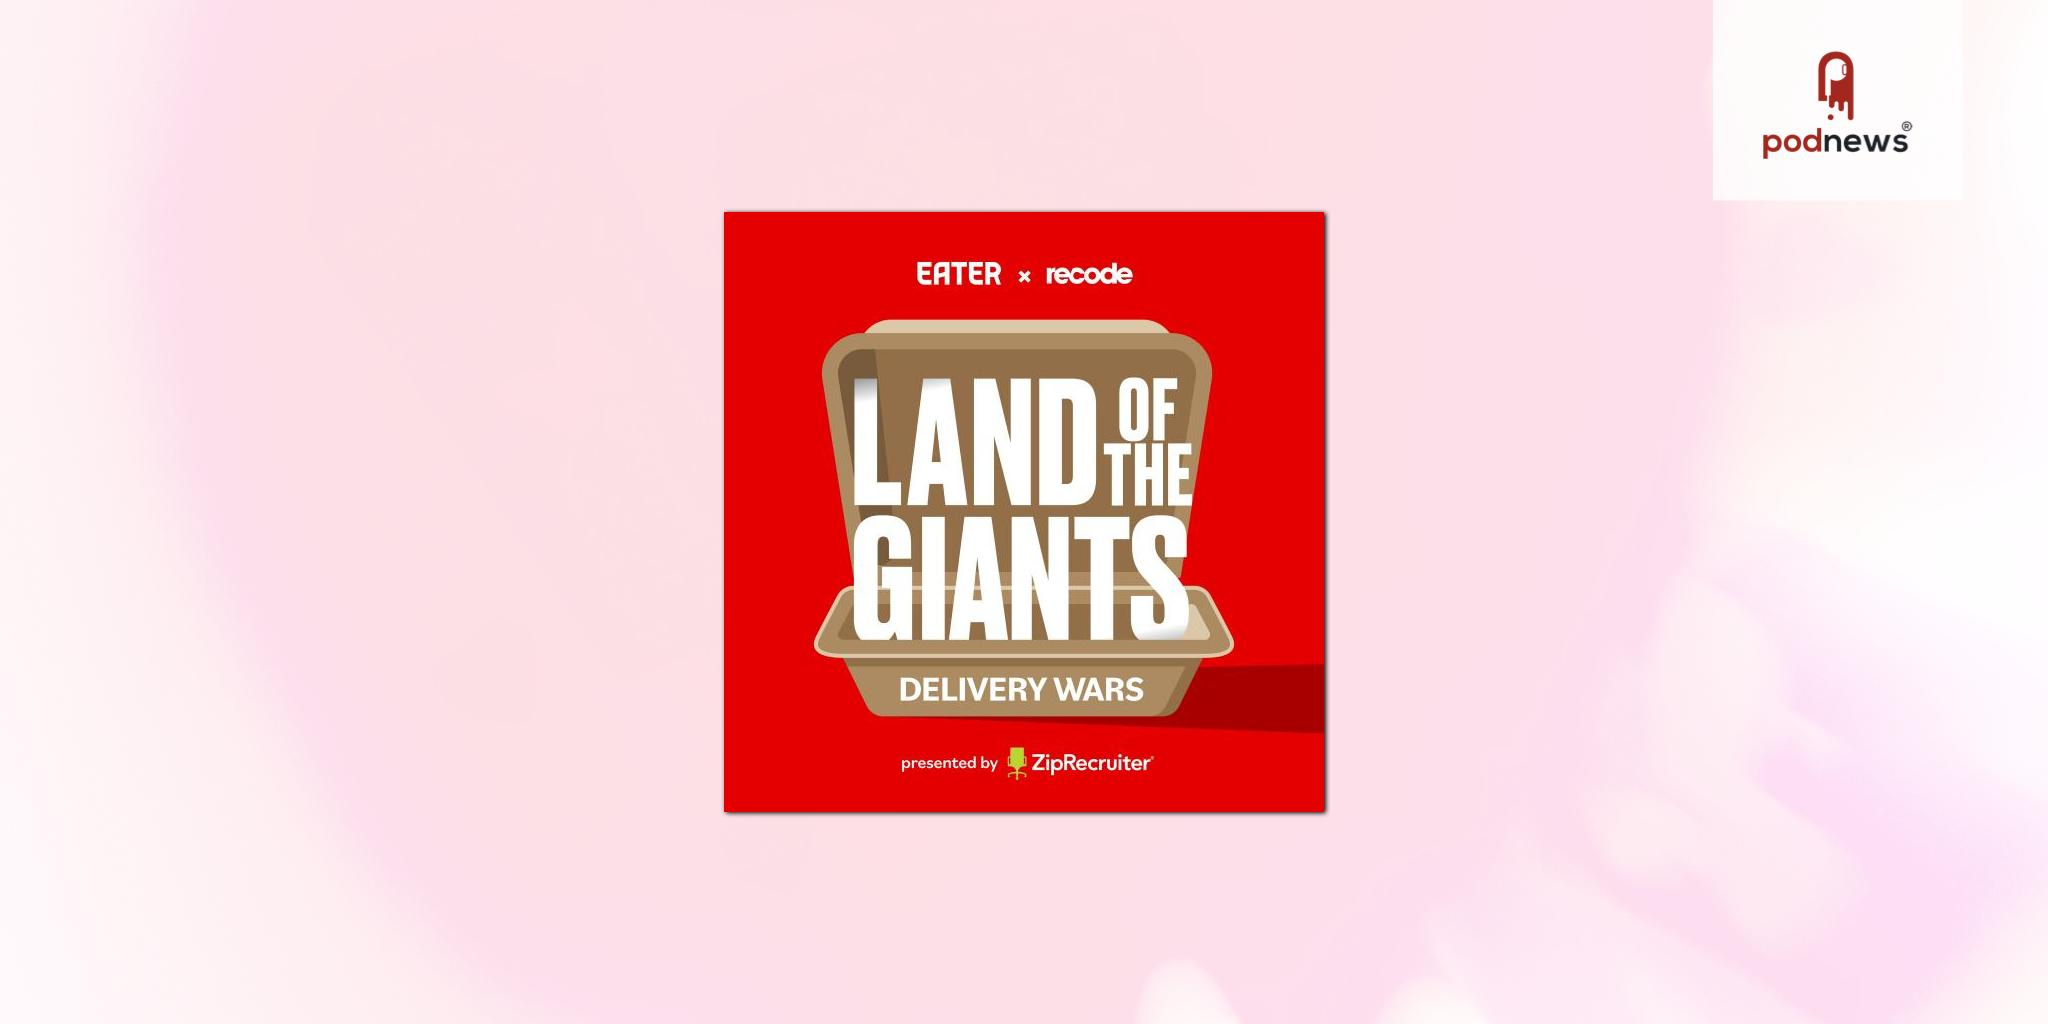 Recode's Land of the Giants Podcast Launches Delivery Wars in Collaboration with Eater